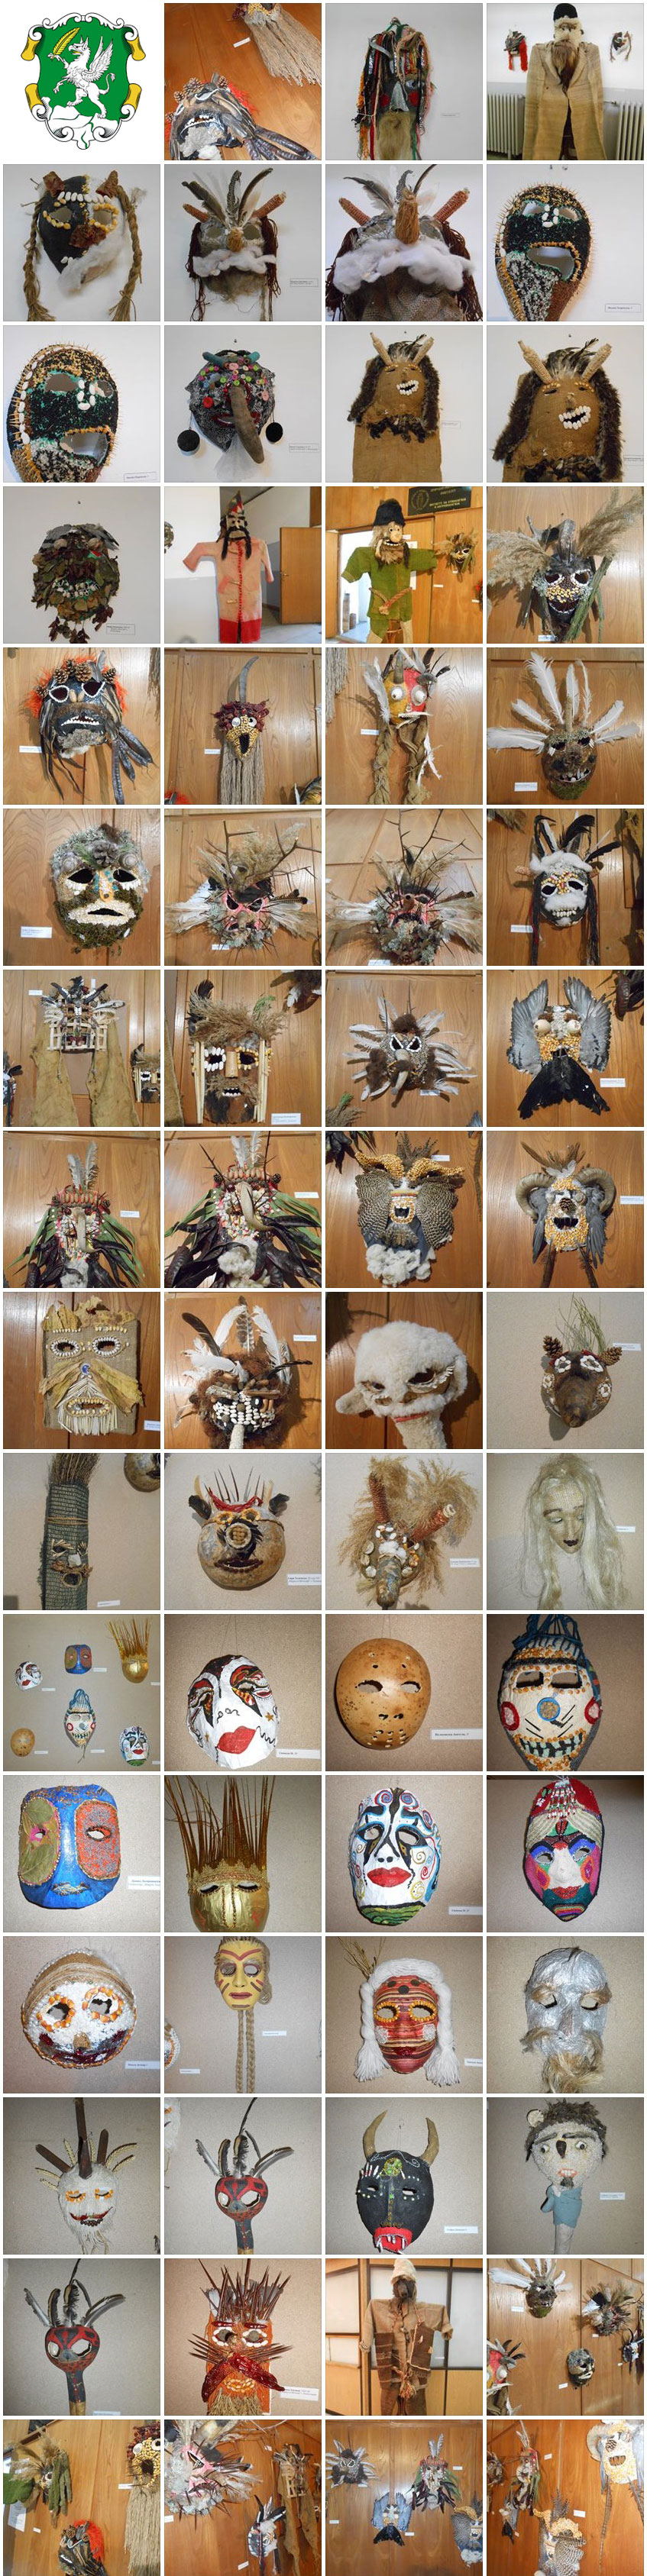 Exhibition_of_masks_Prochka_2016